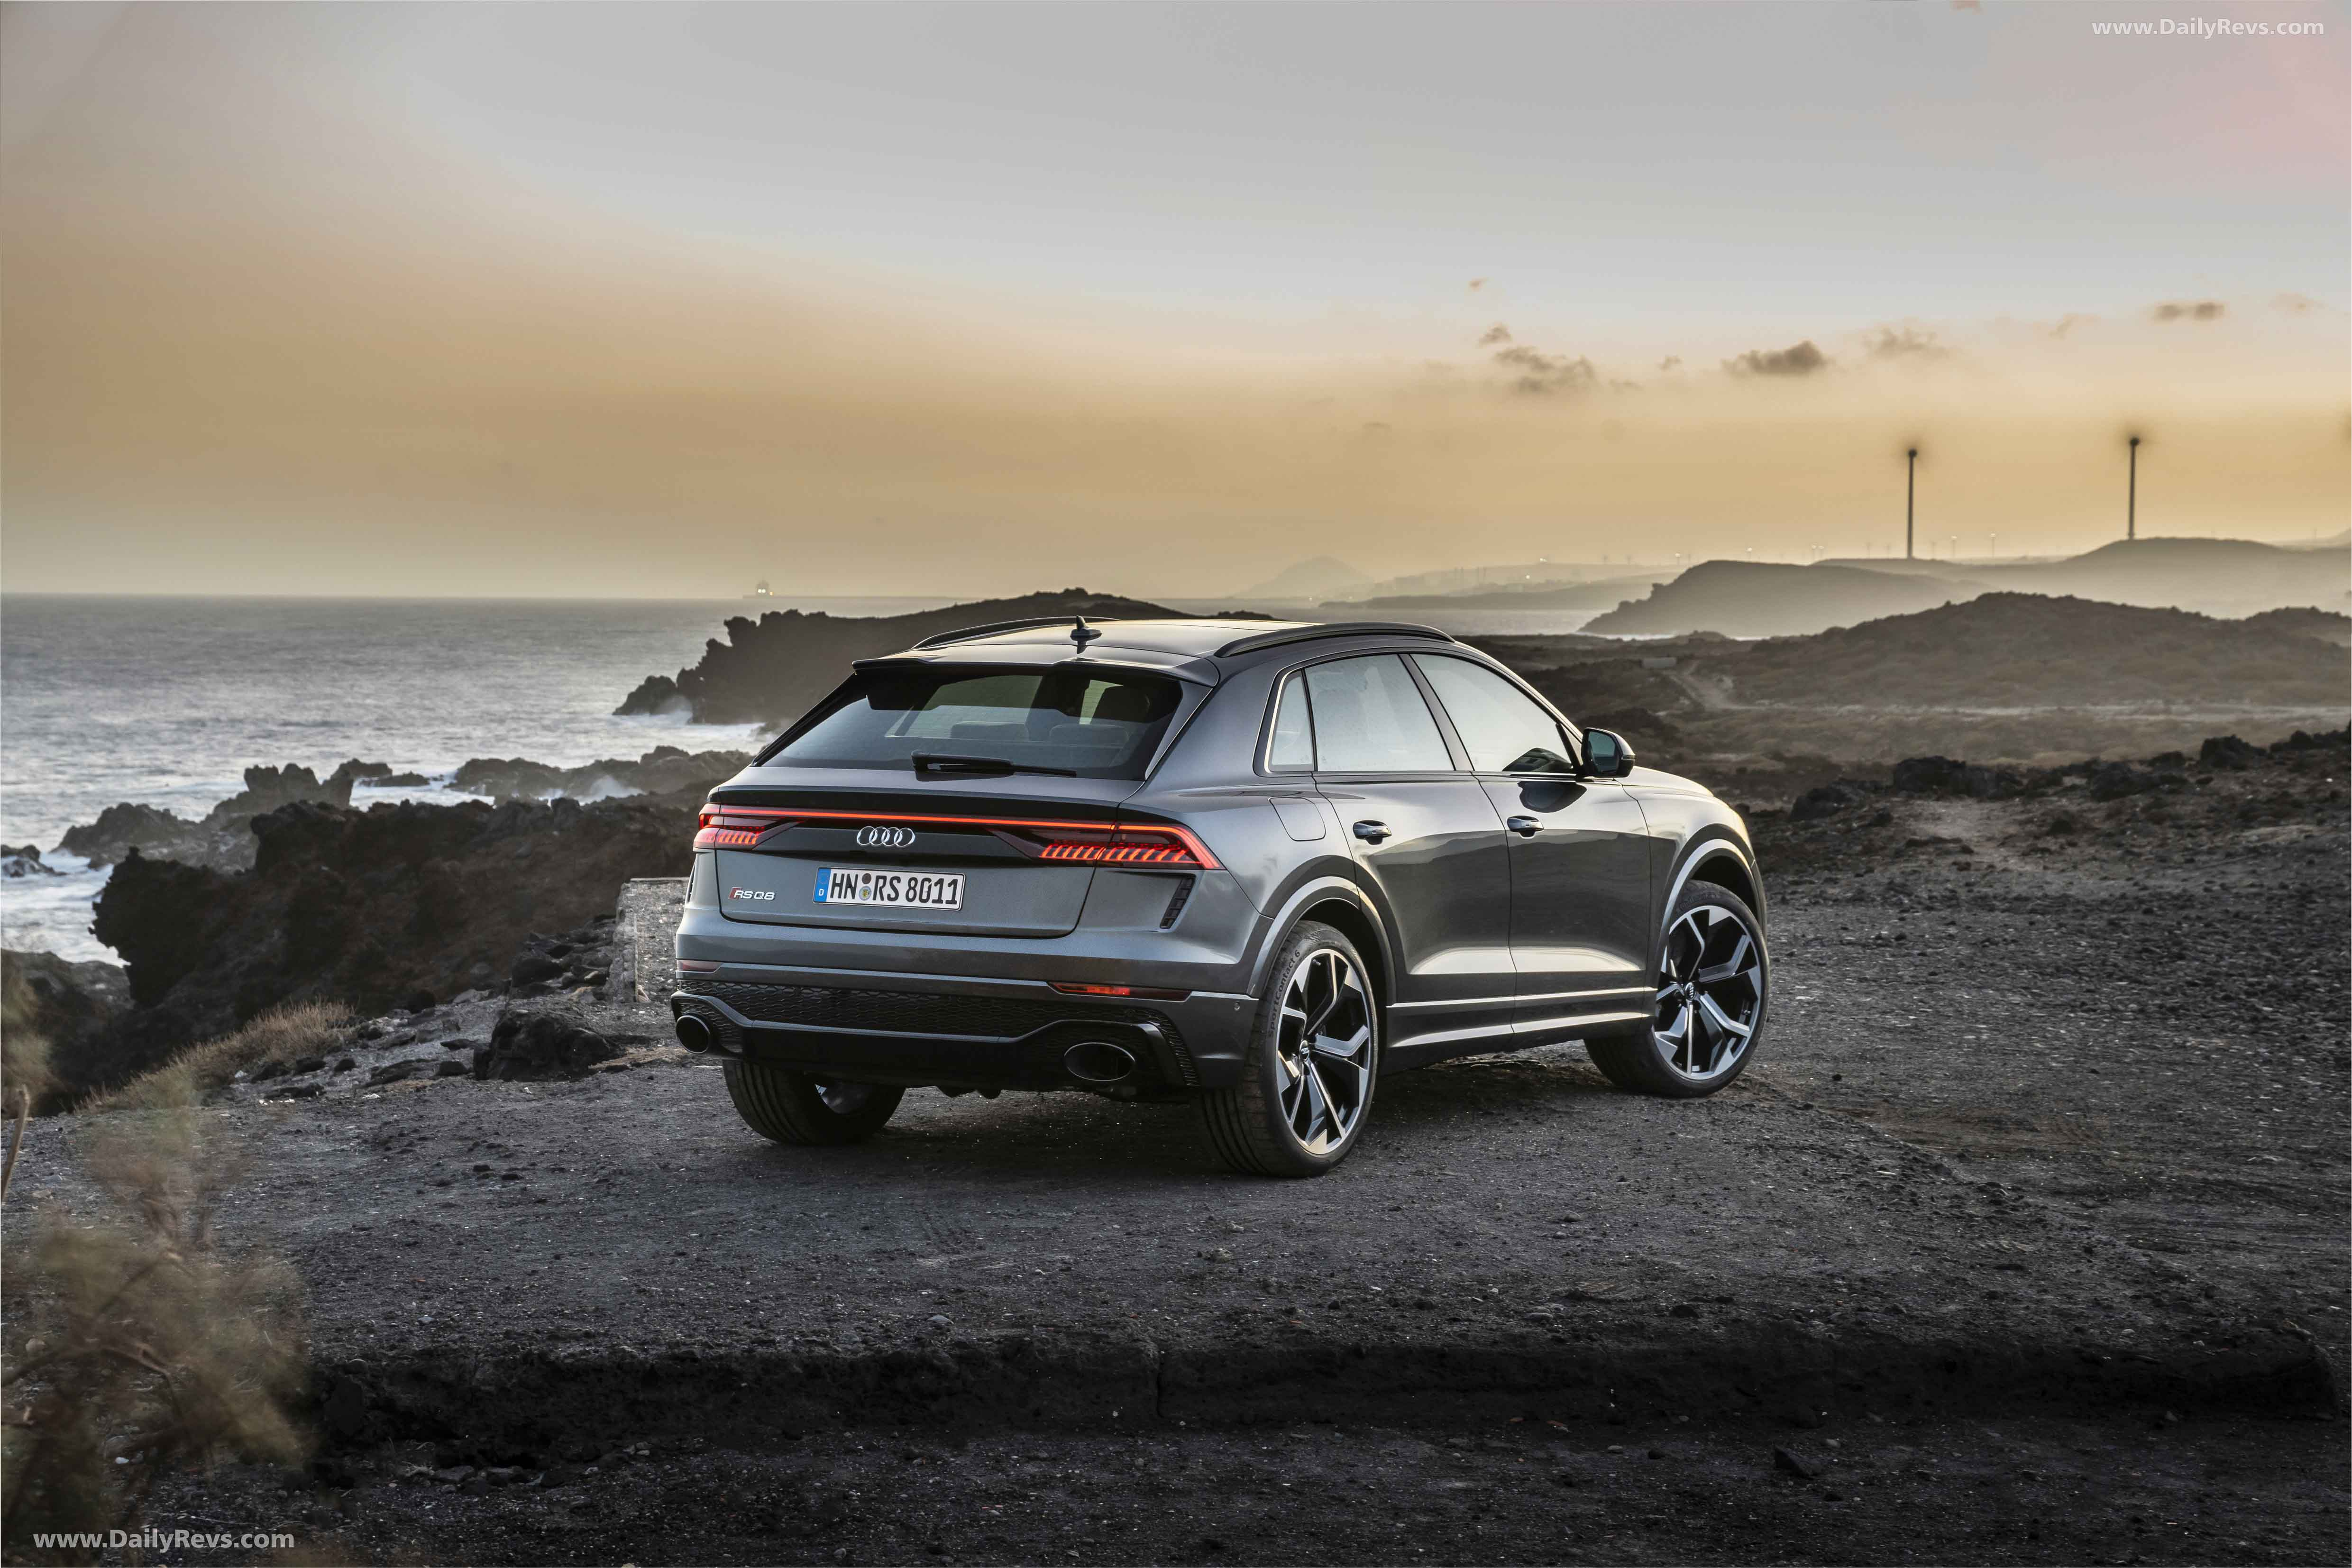 2020 Audi RS Q8 - Pictures, Images, Photos & Wallpapers ...